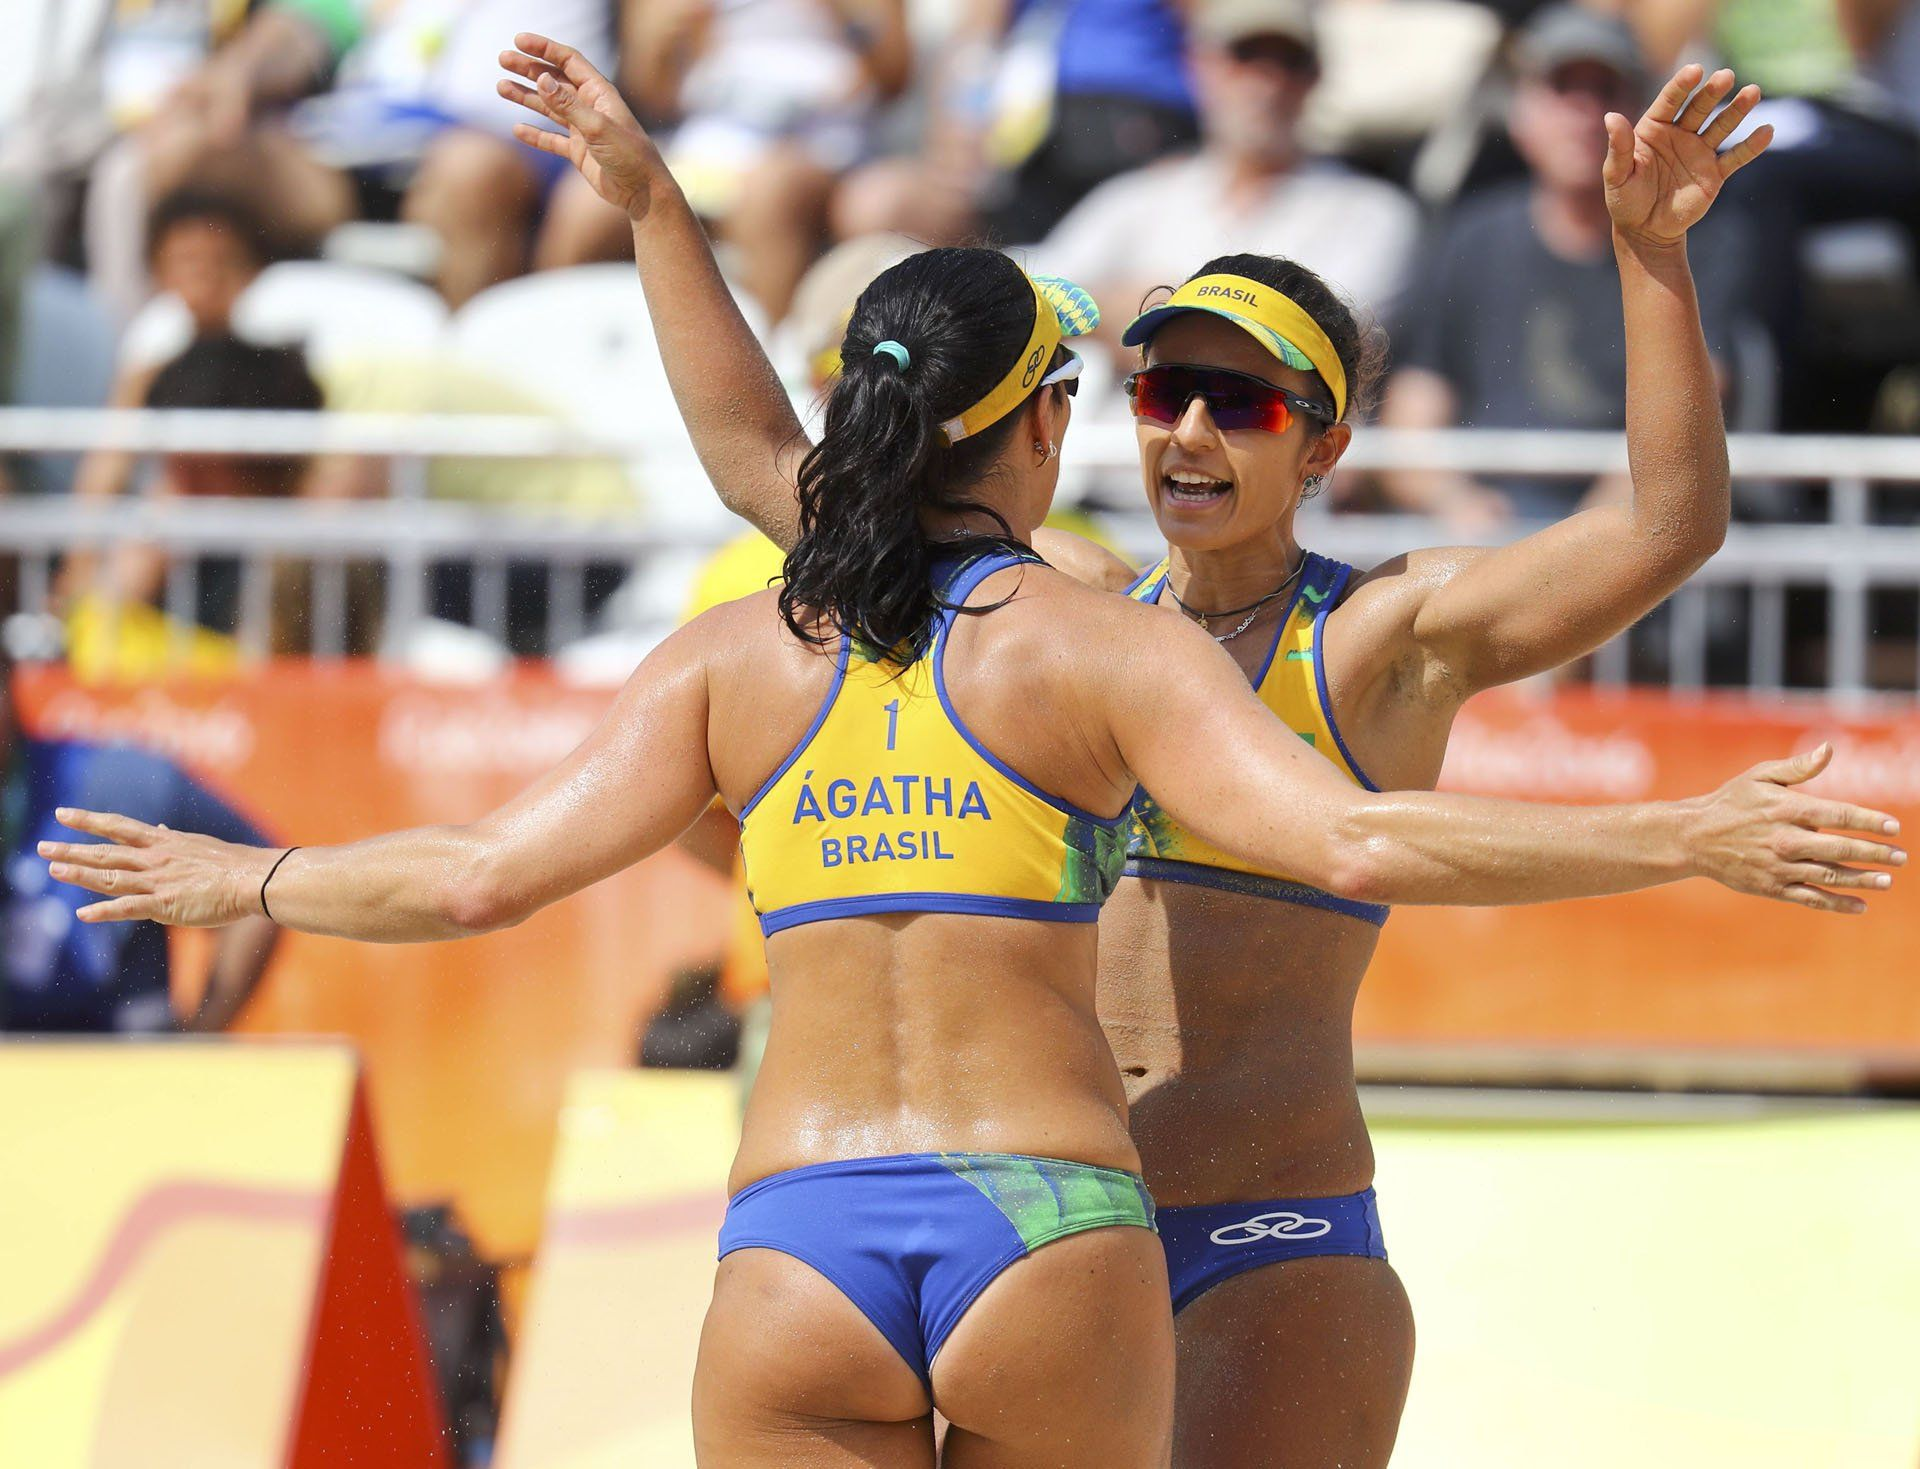 Arms And Legs Aloft Female Volleyball Players Olympics Volleyball Players